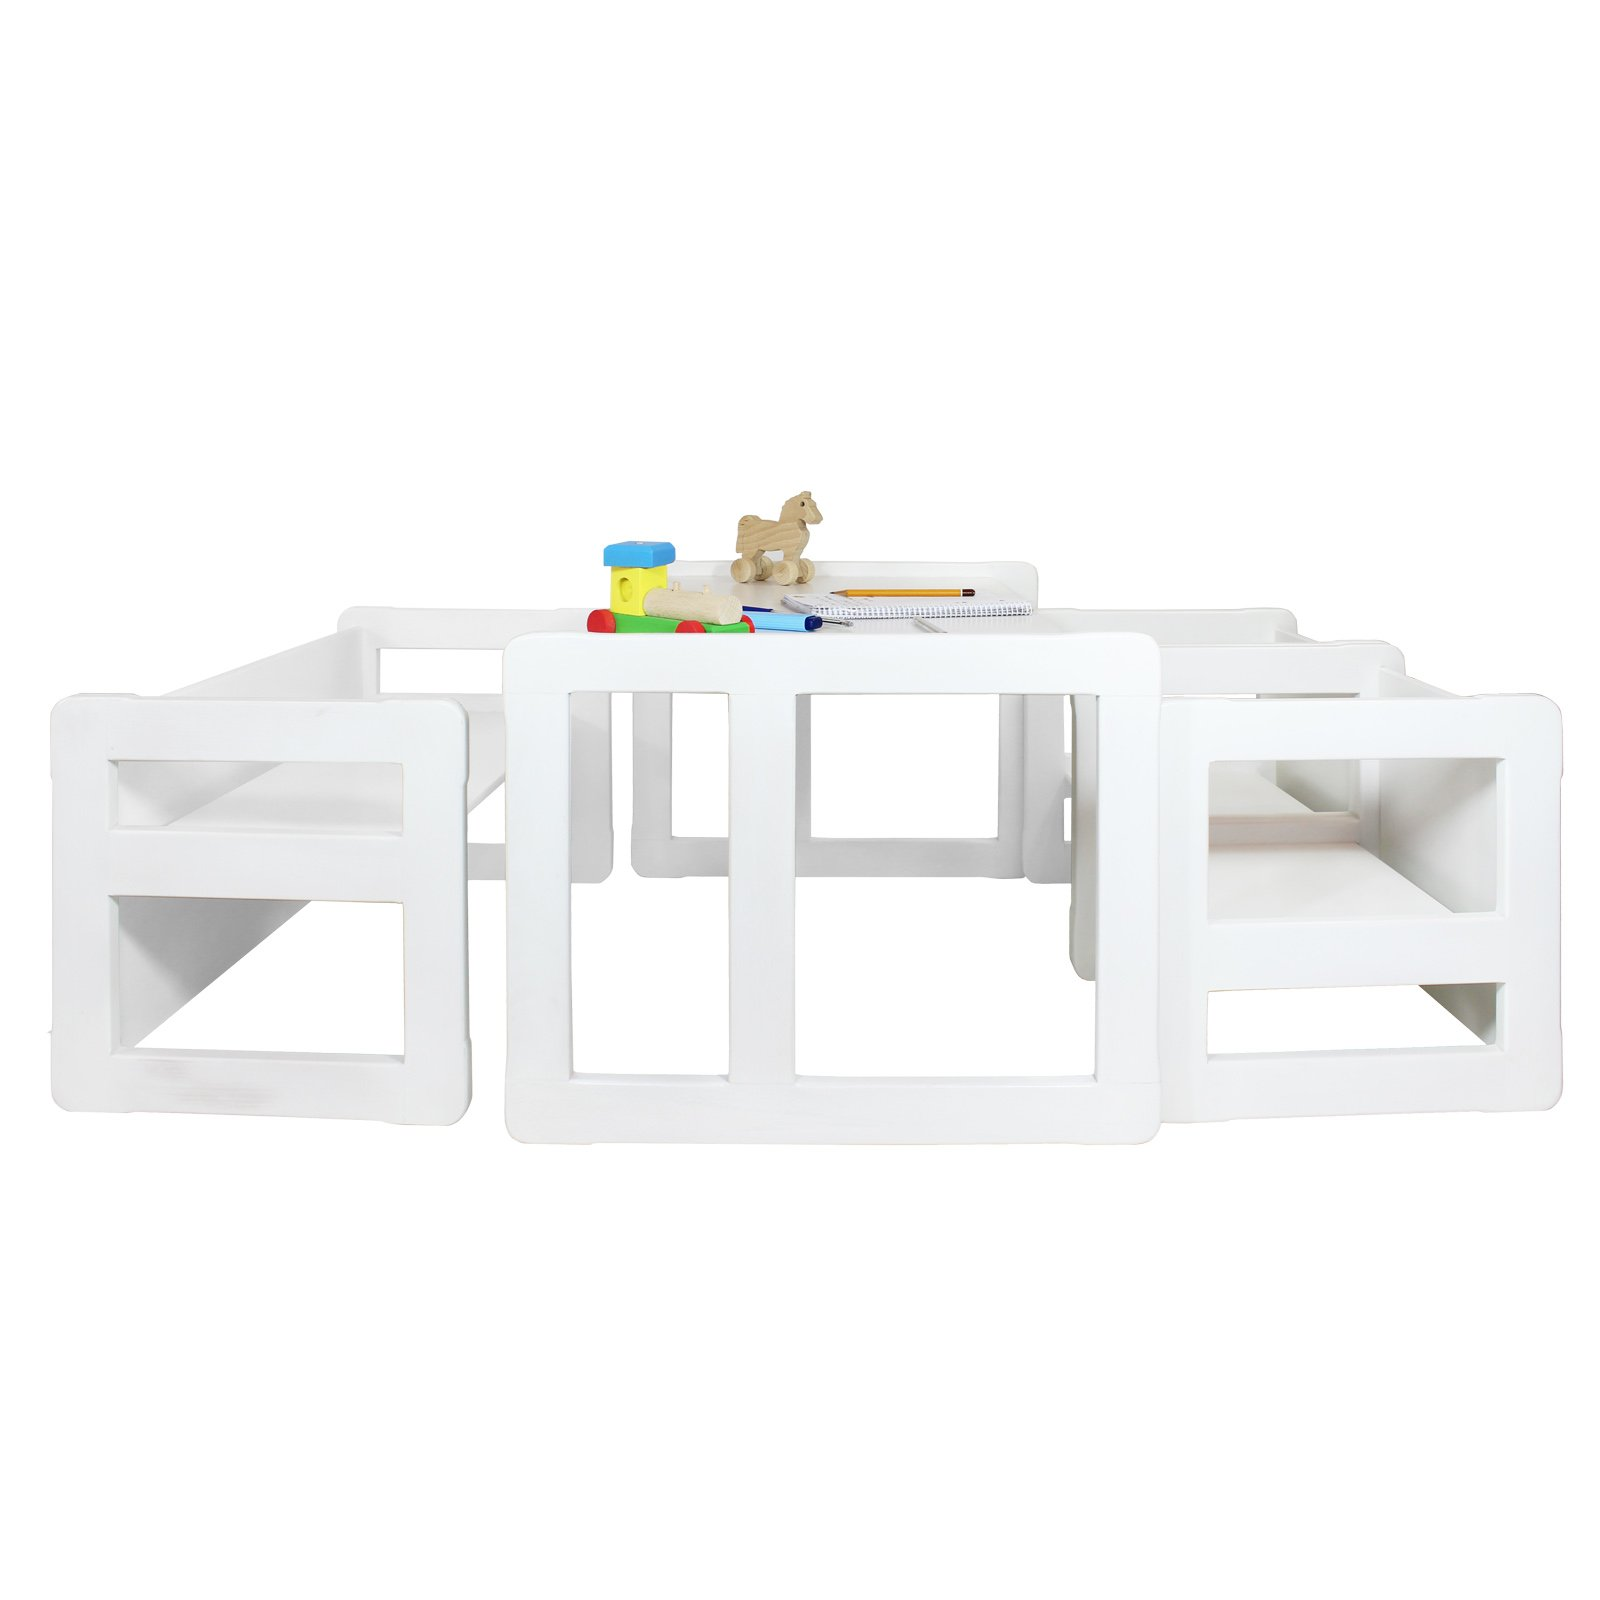 3 in 1 Childrens Multifunctional Furniture Set of 4, Two Small Chairs or Tables and One Small Bench or Table and One Large Bench or Table Beech Wood, White Stained by Obique Ltd (Image #1)